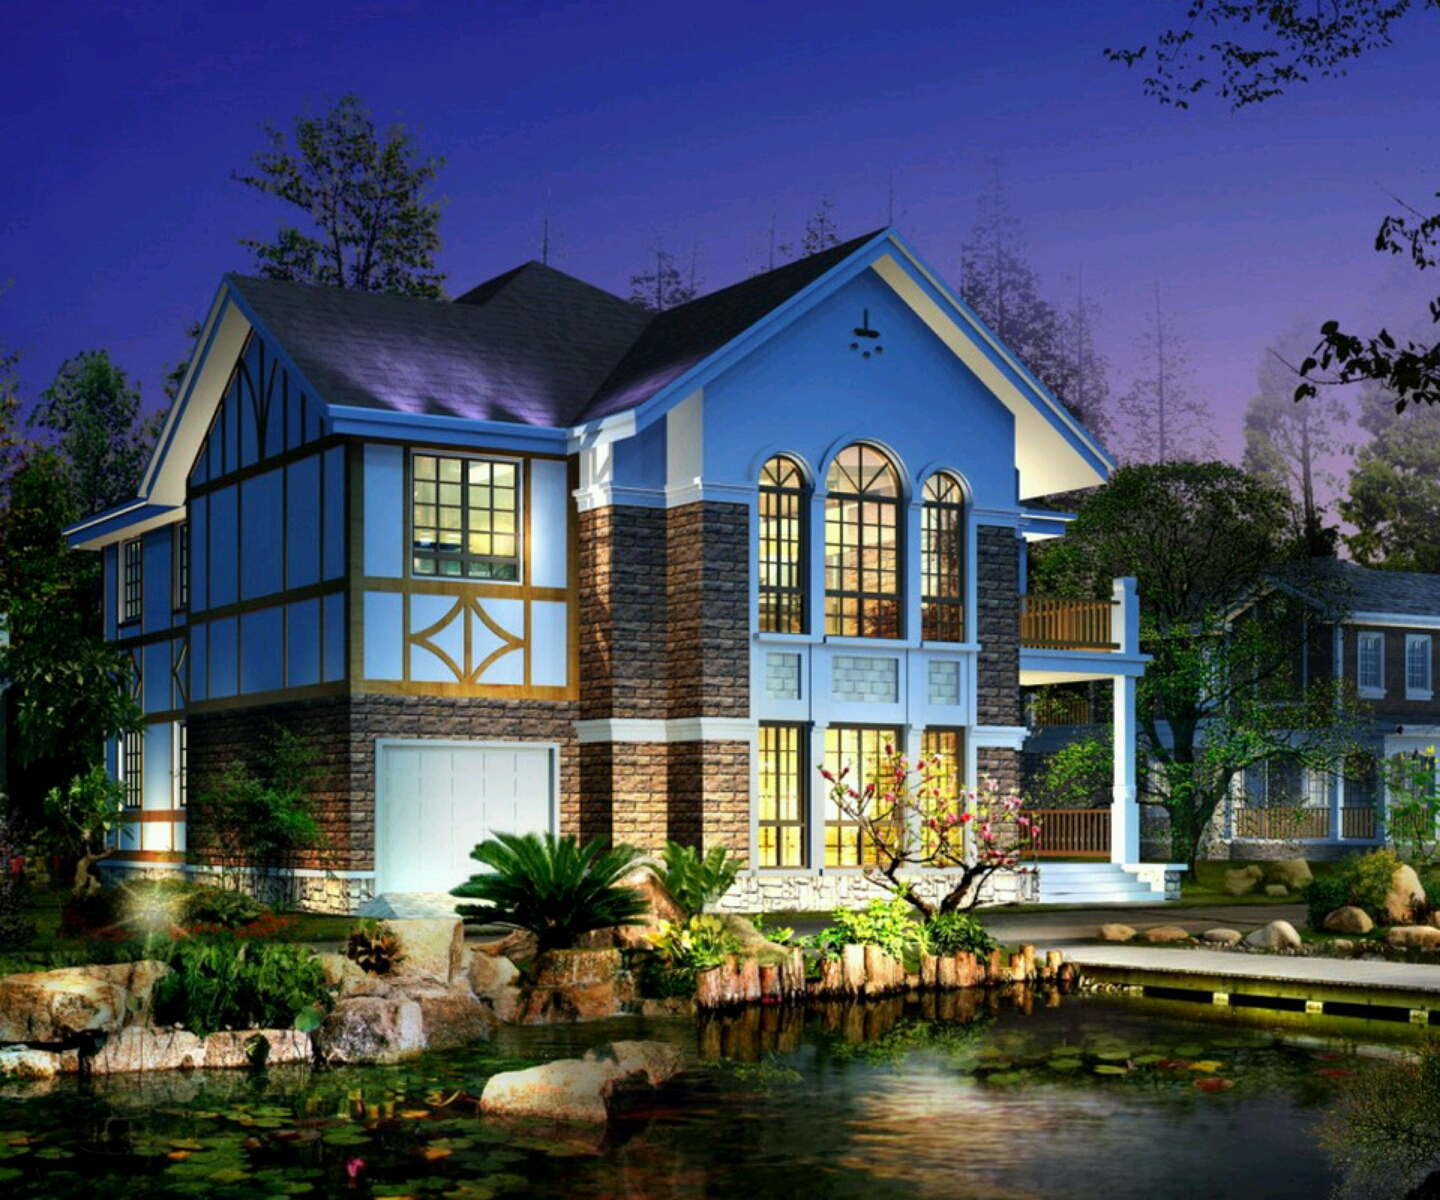 New home designs latest modern big homes exterior for Exterior design idea